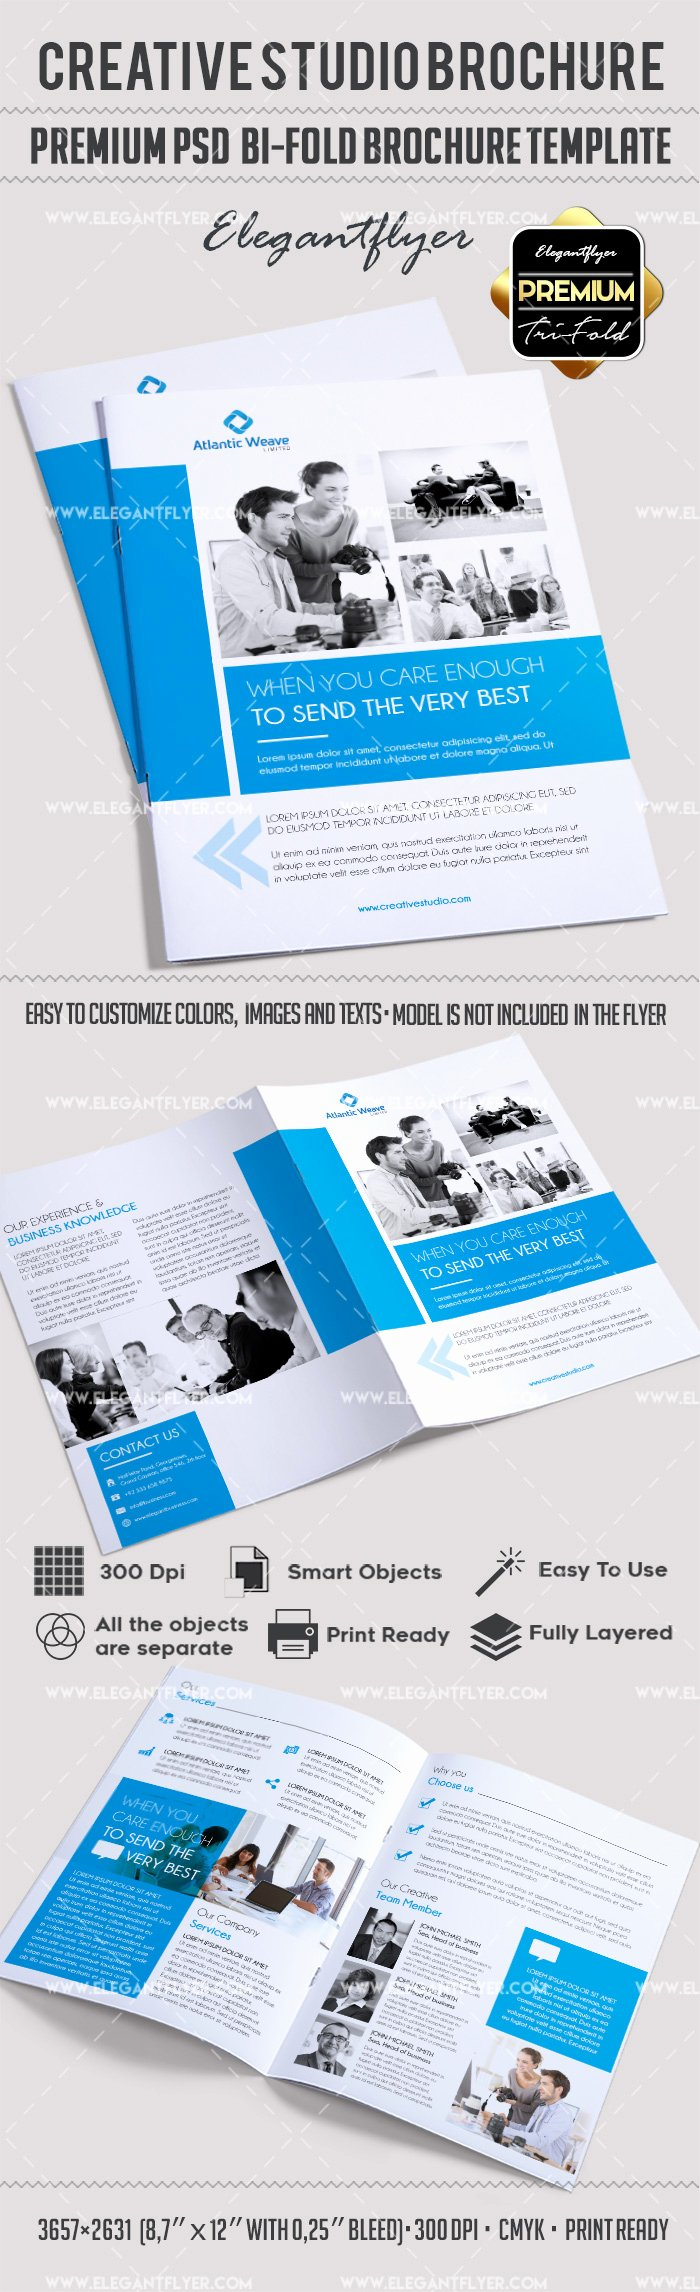 Bi Fold Brochure Template Luxury Creative Studio Bi Fold Brochure – by Elegantflyer